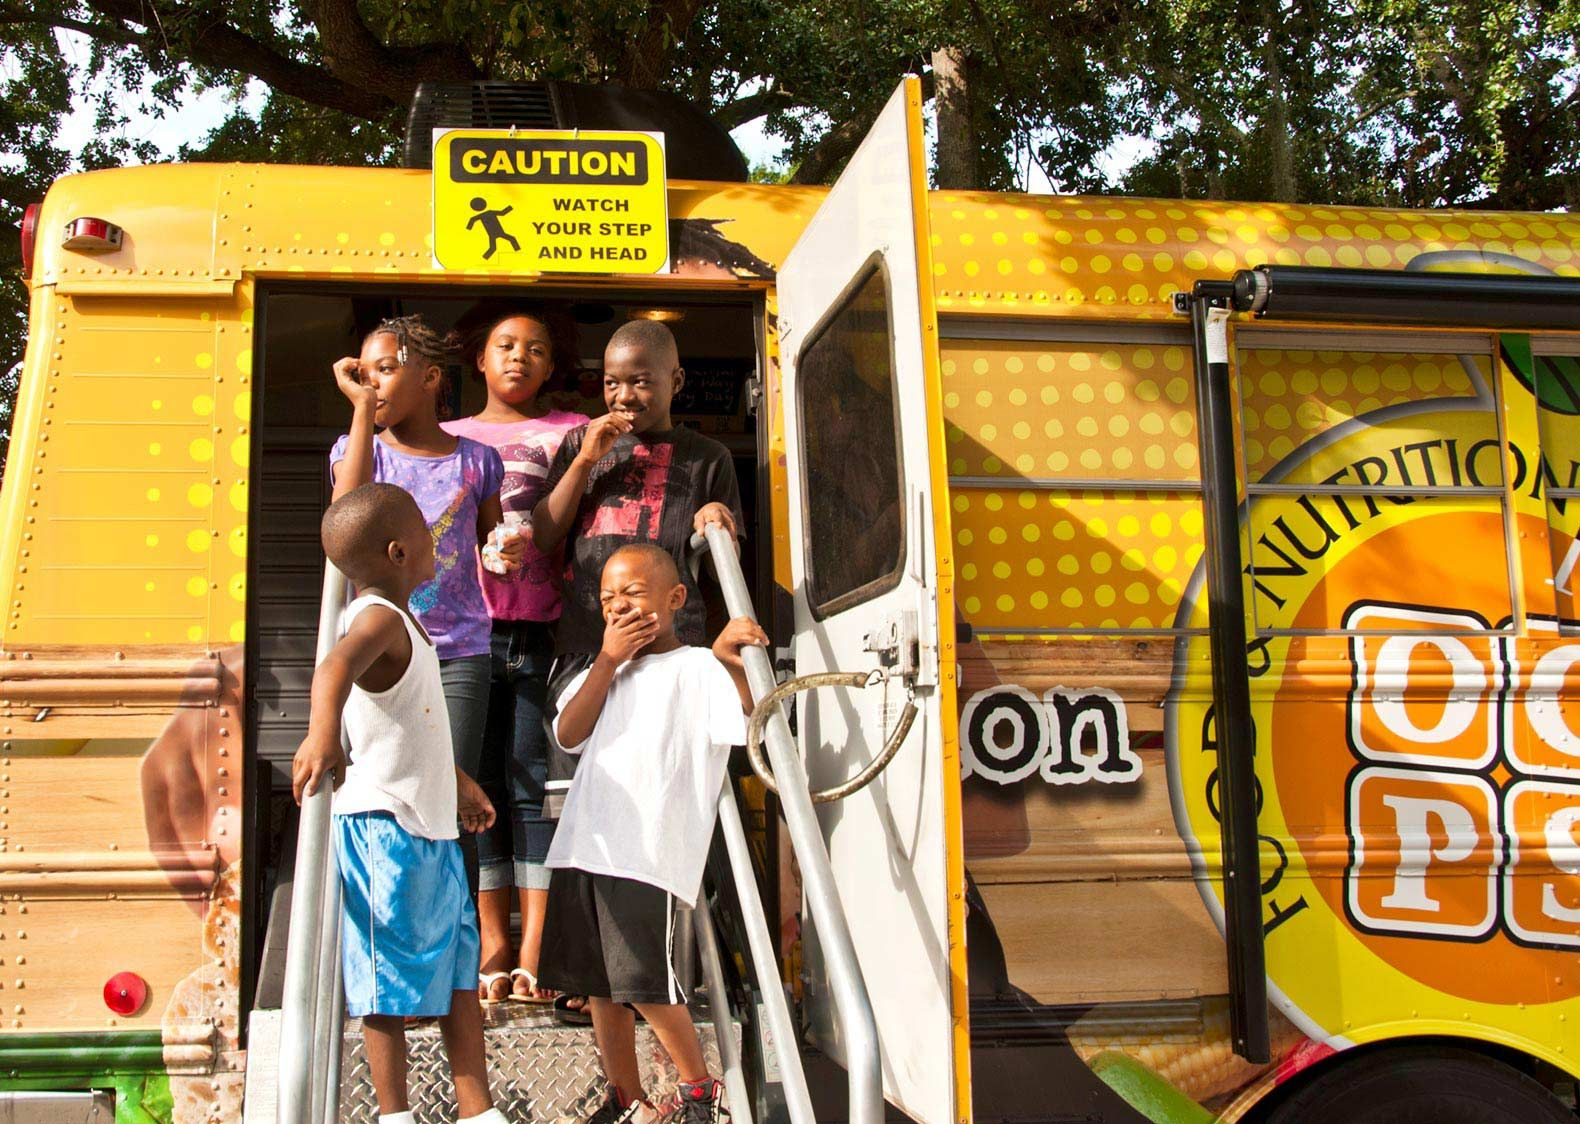 Orange County Public Schools in Orlando, Florida, serves over 1 million free meals each summer by bringing food to students by bus.